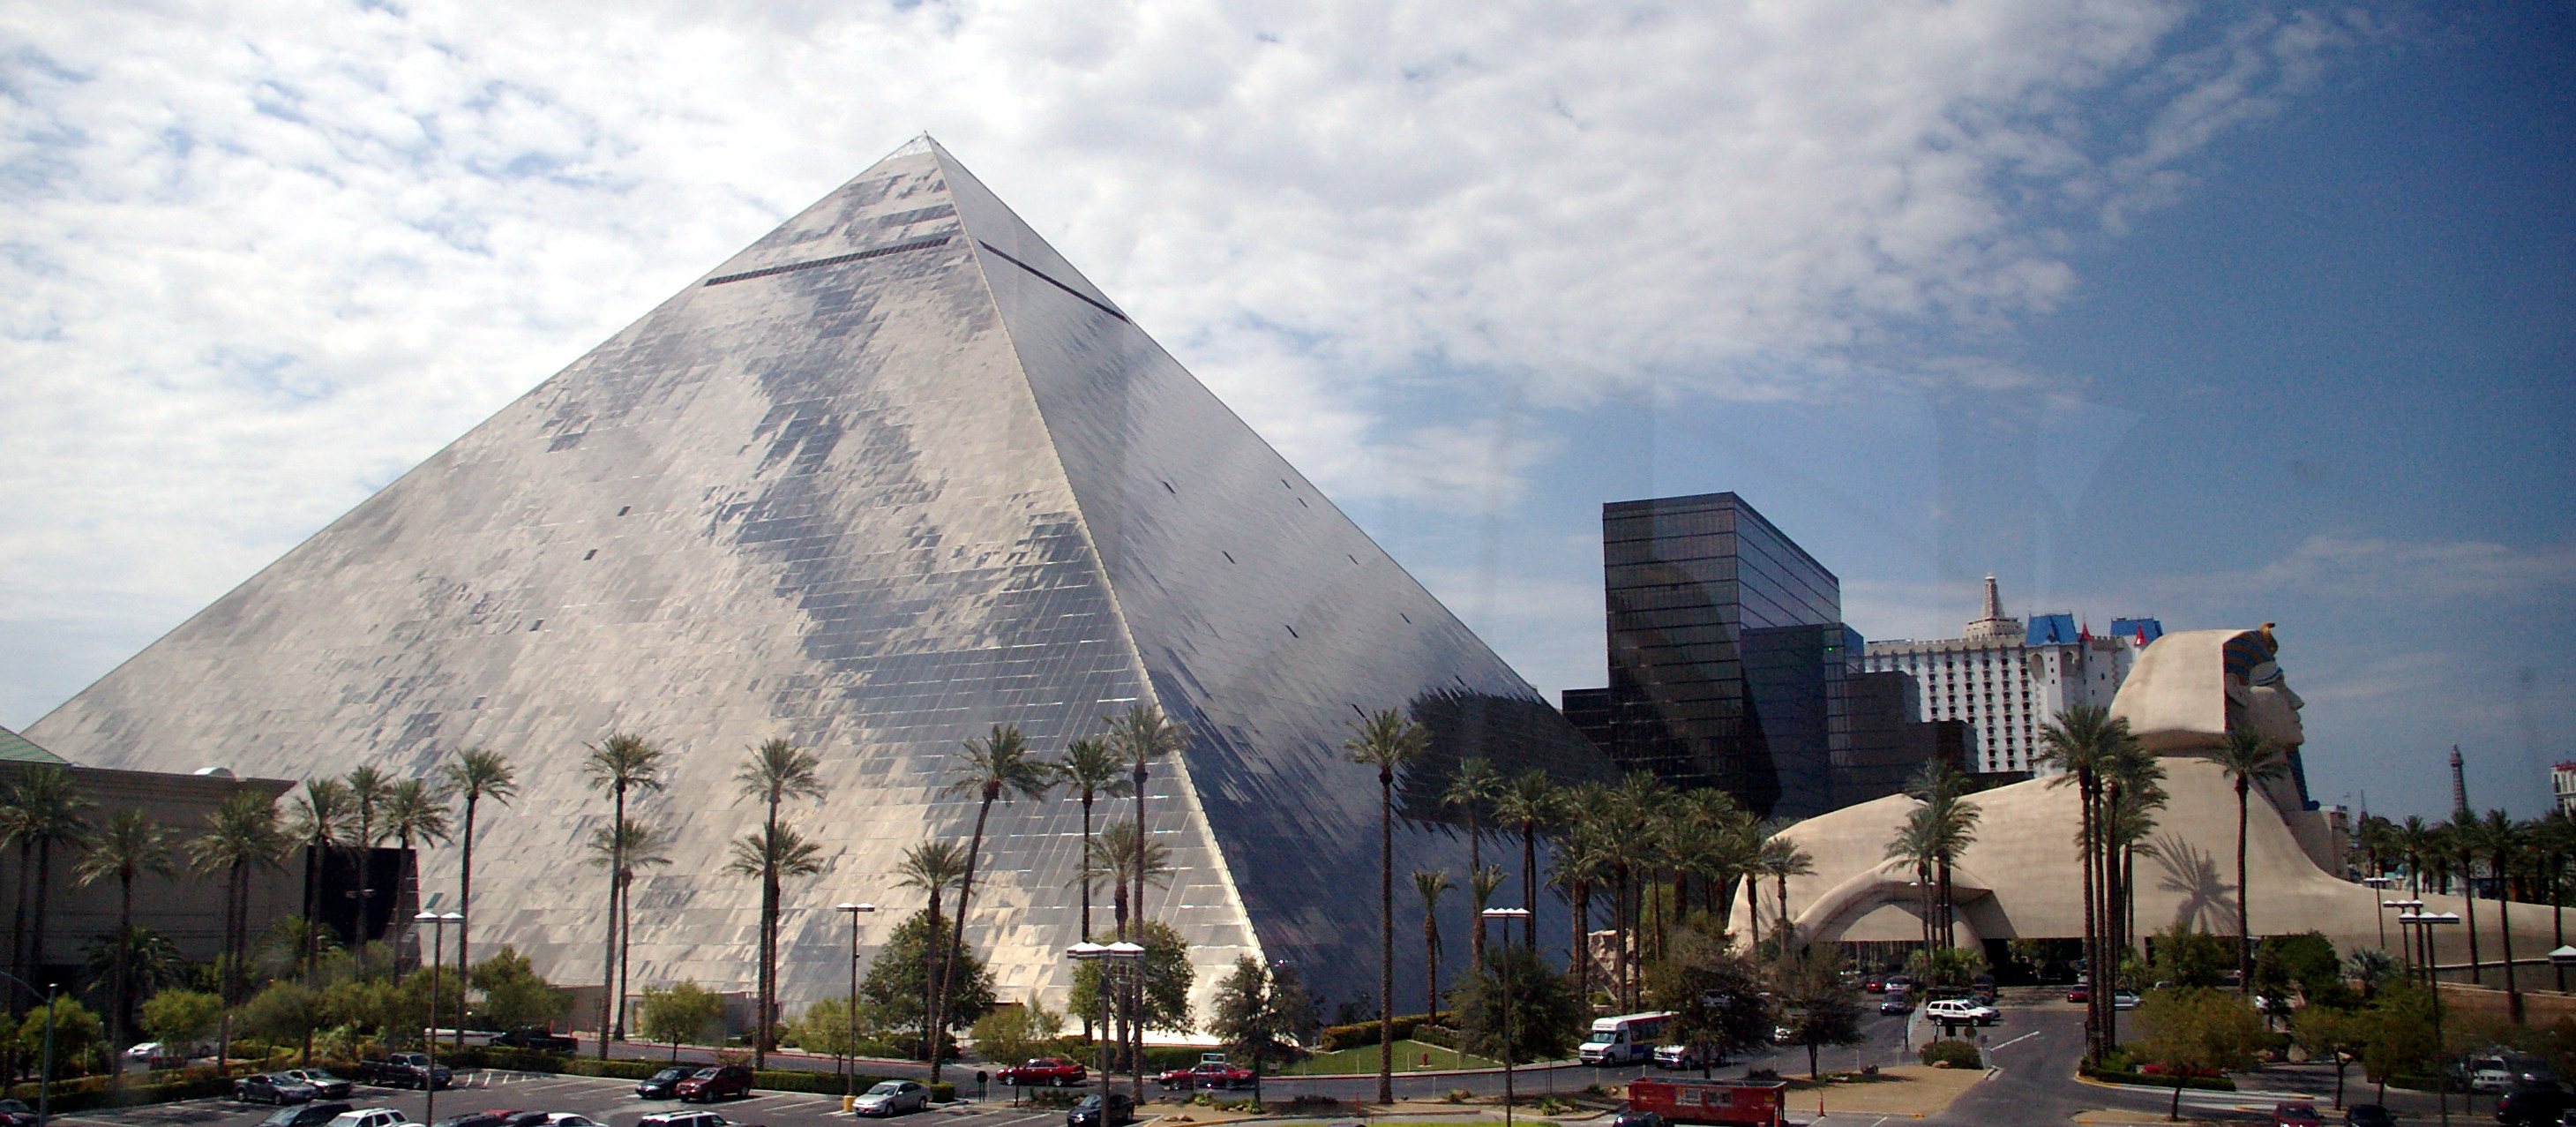 The Luxor Hotel and Casino in Las Vegas by Mark Wagner